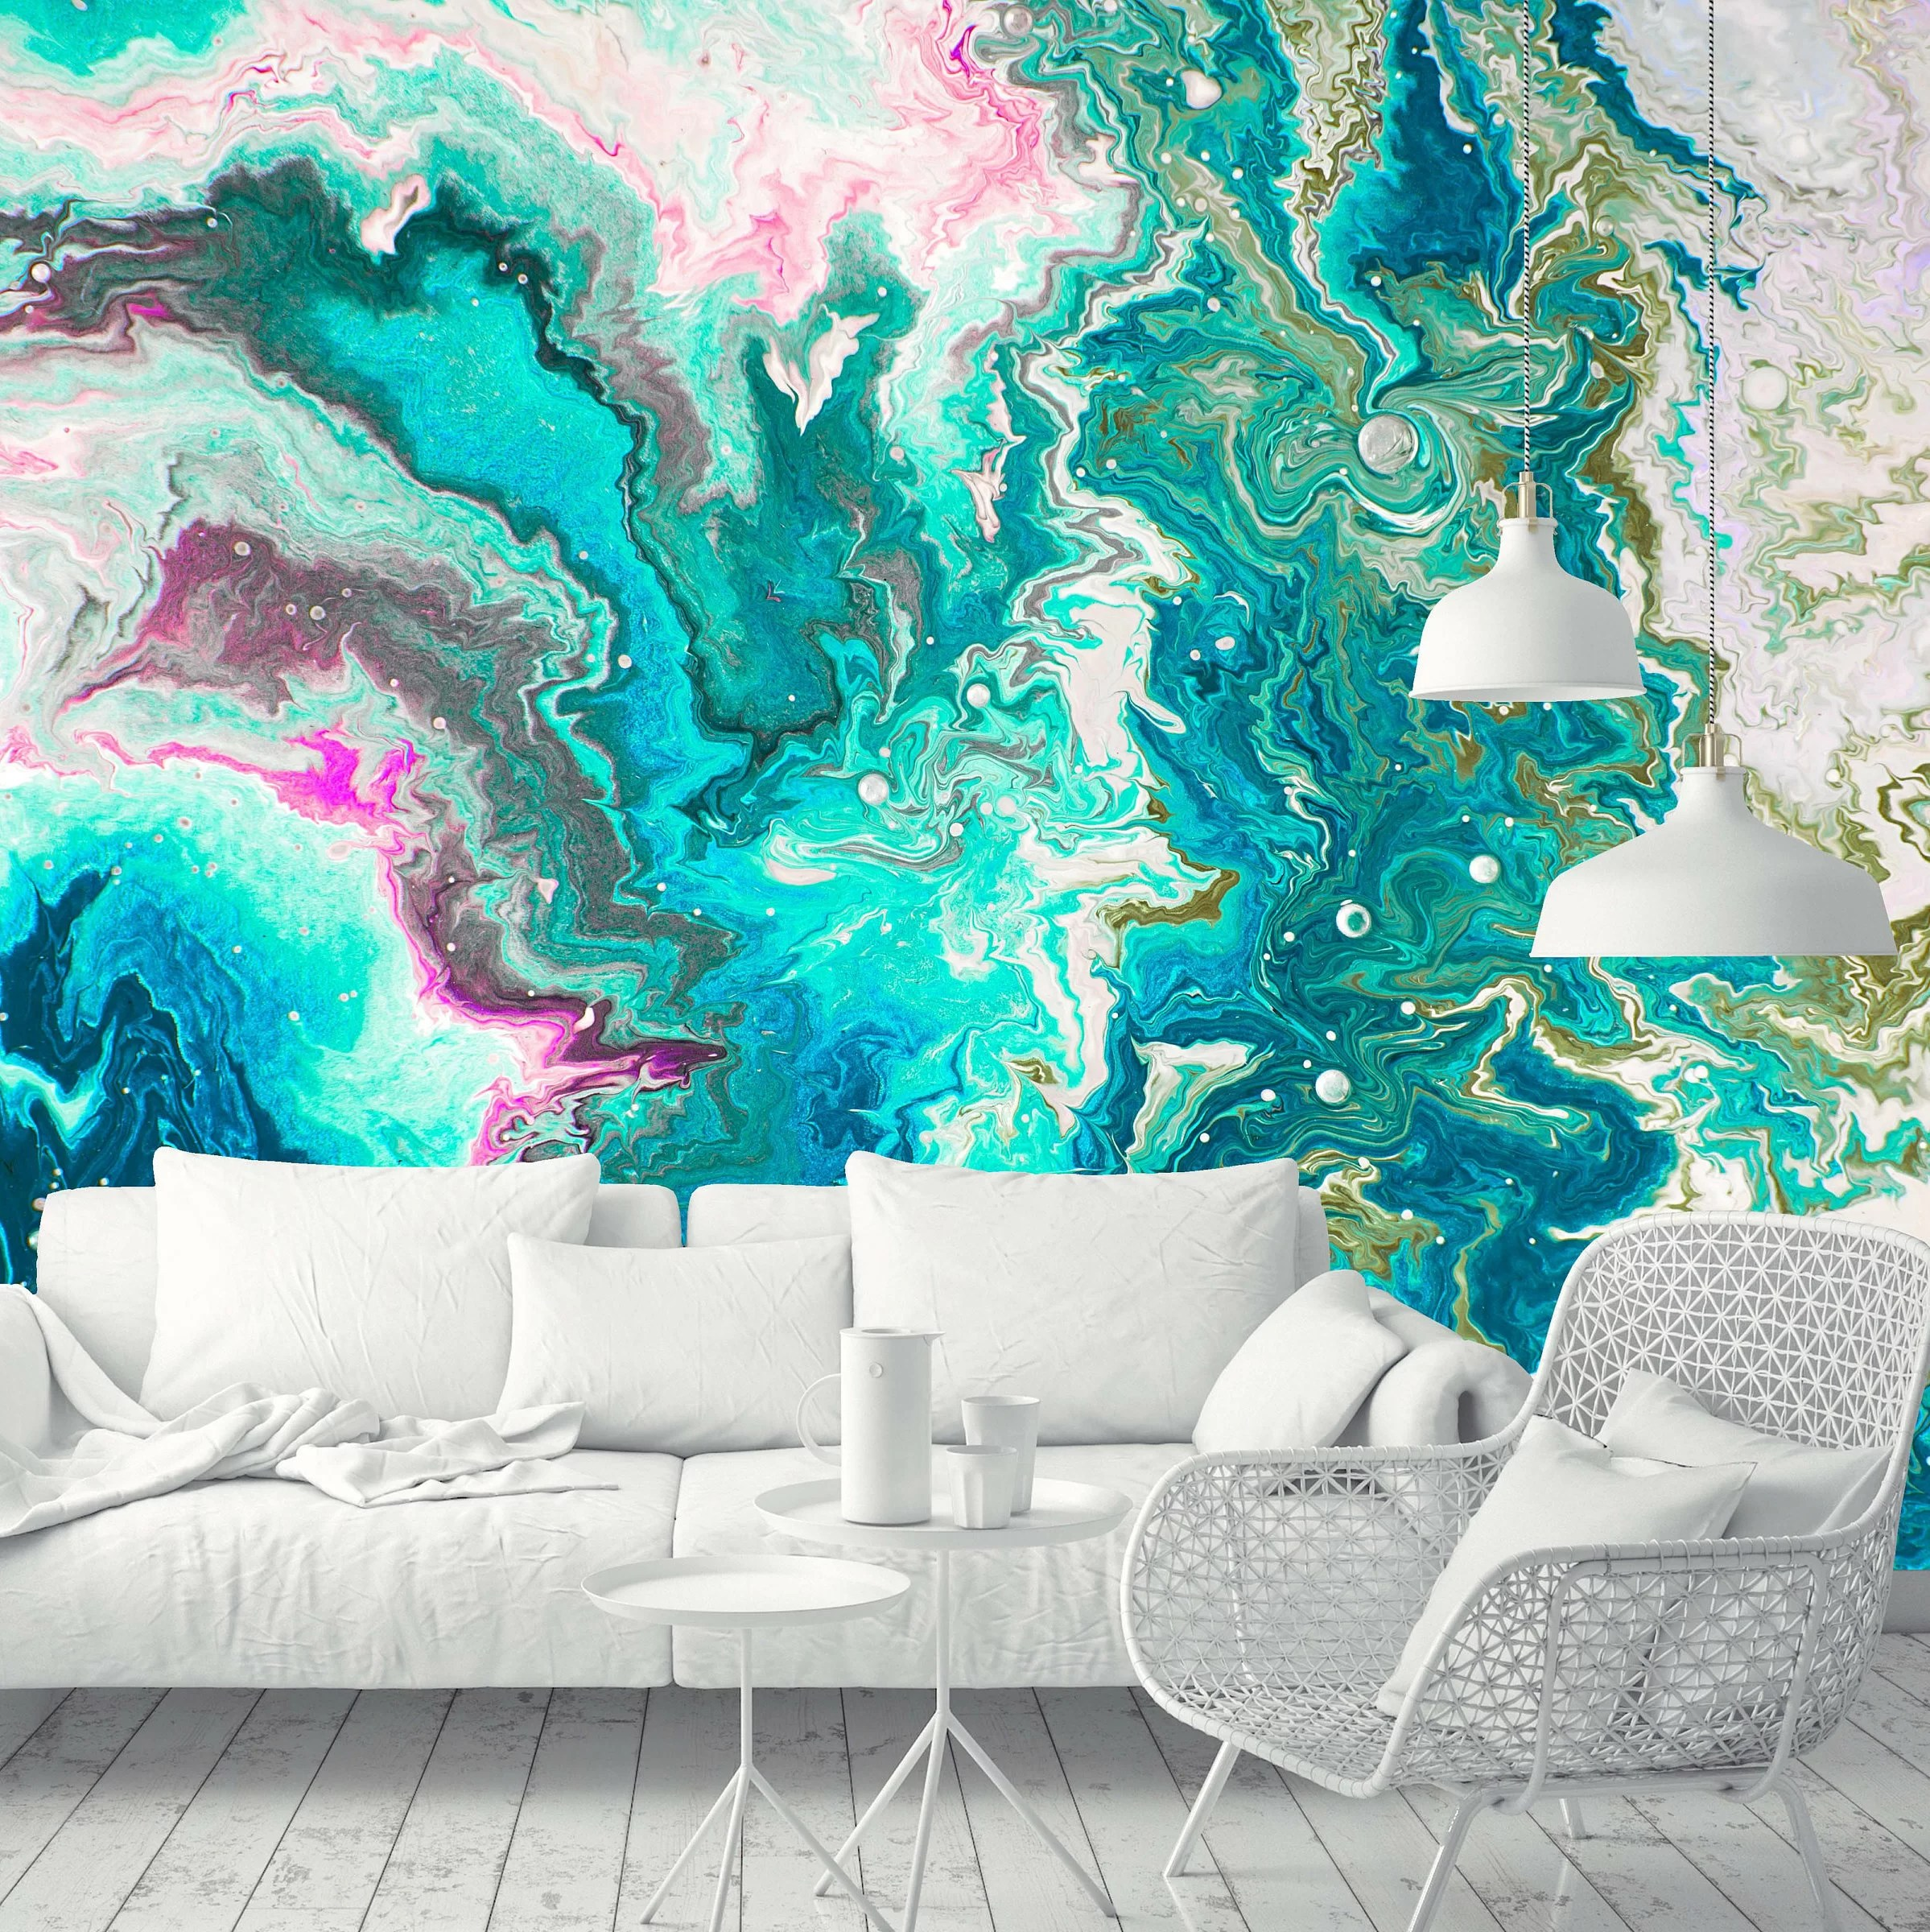 Wallpaper Murals For Bathrooms Goldberg Removable Abstract Paint 6 58 L X 125